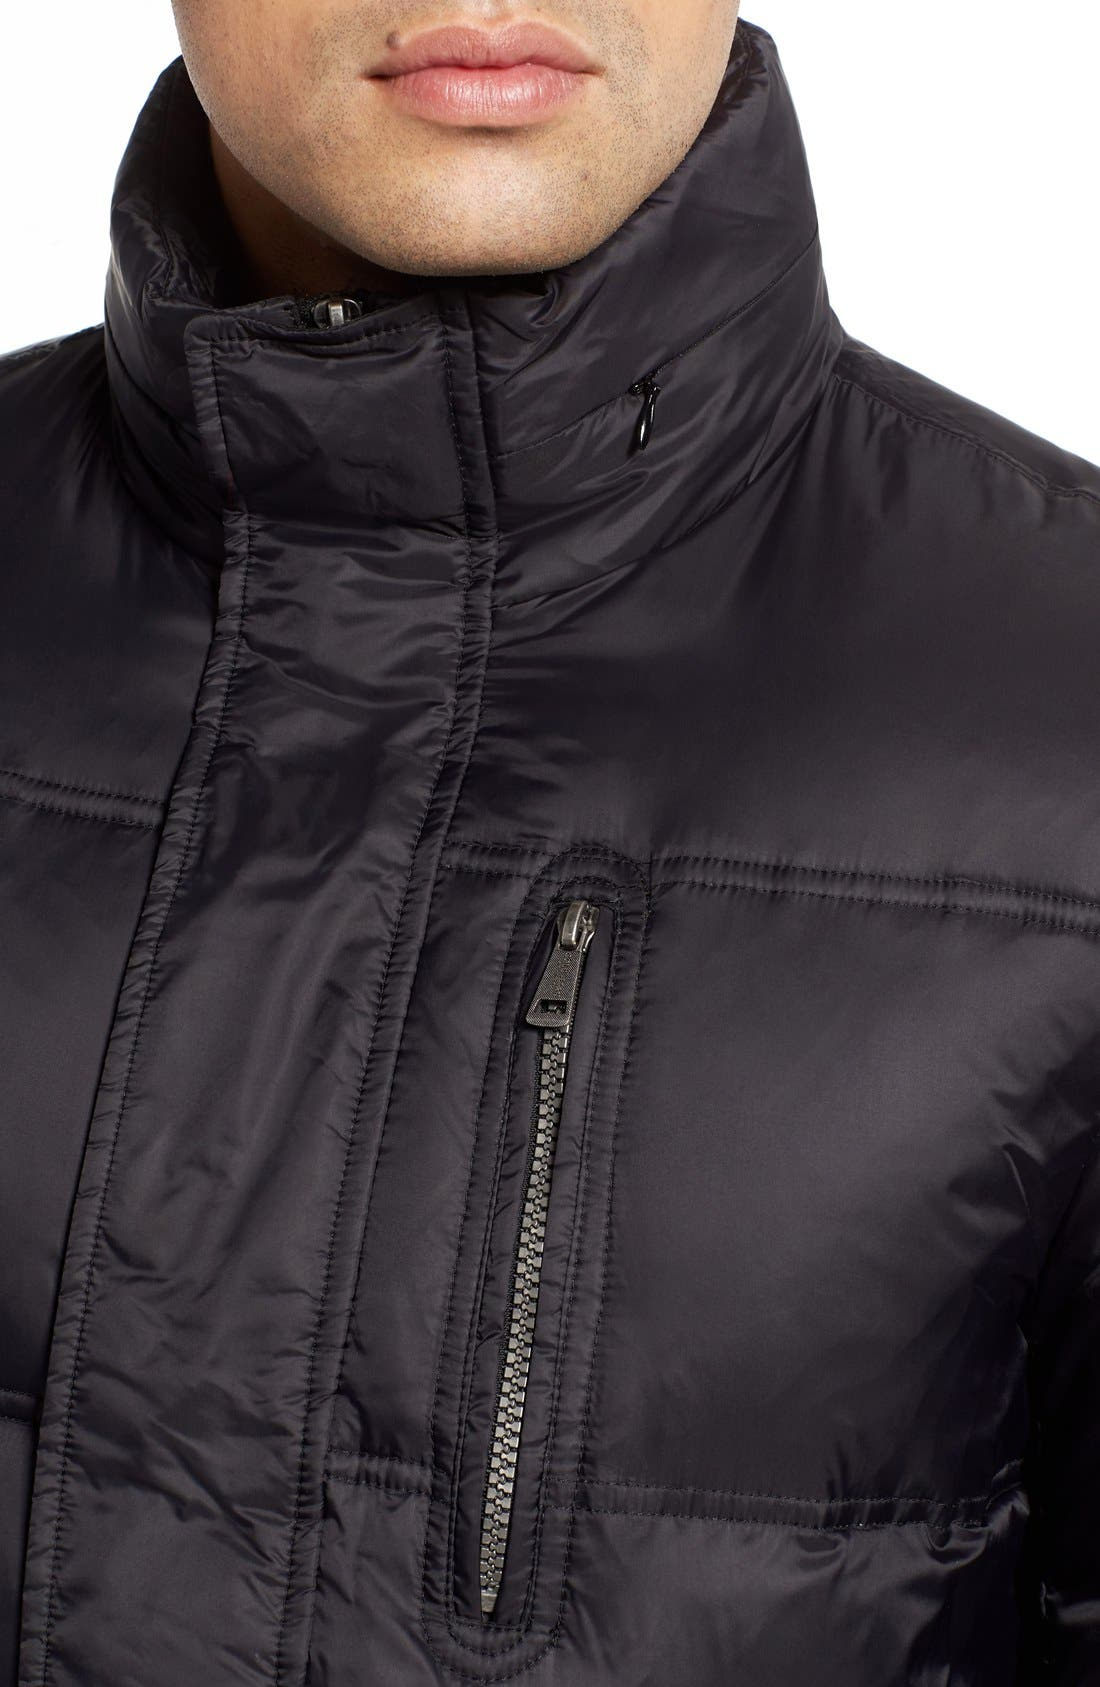 Quilted Jacket with Convertible Neck Pillow,                             Alternate thumbnail 4, color,                             Black